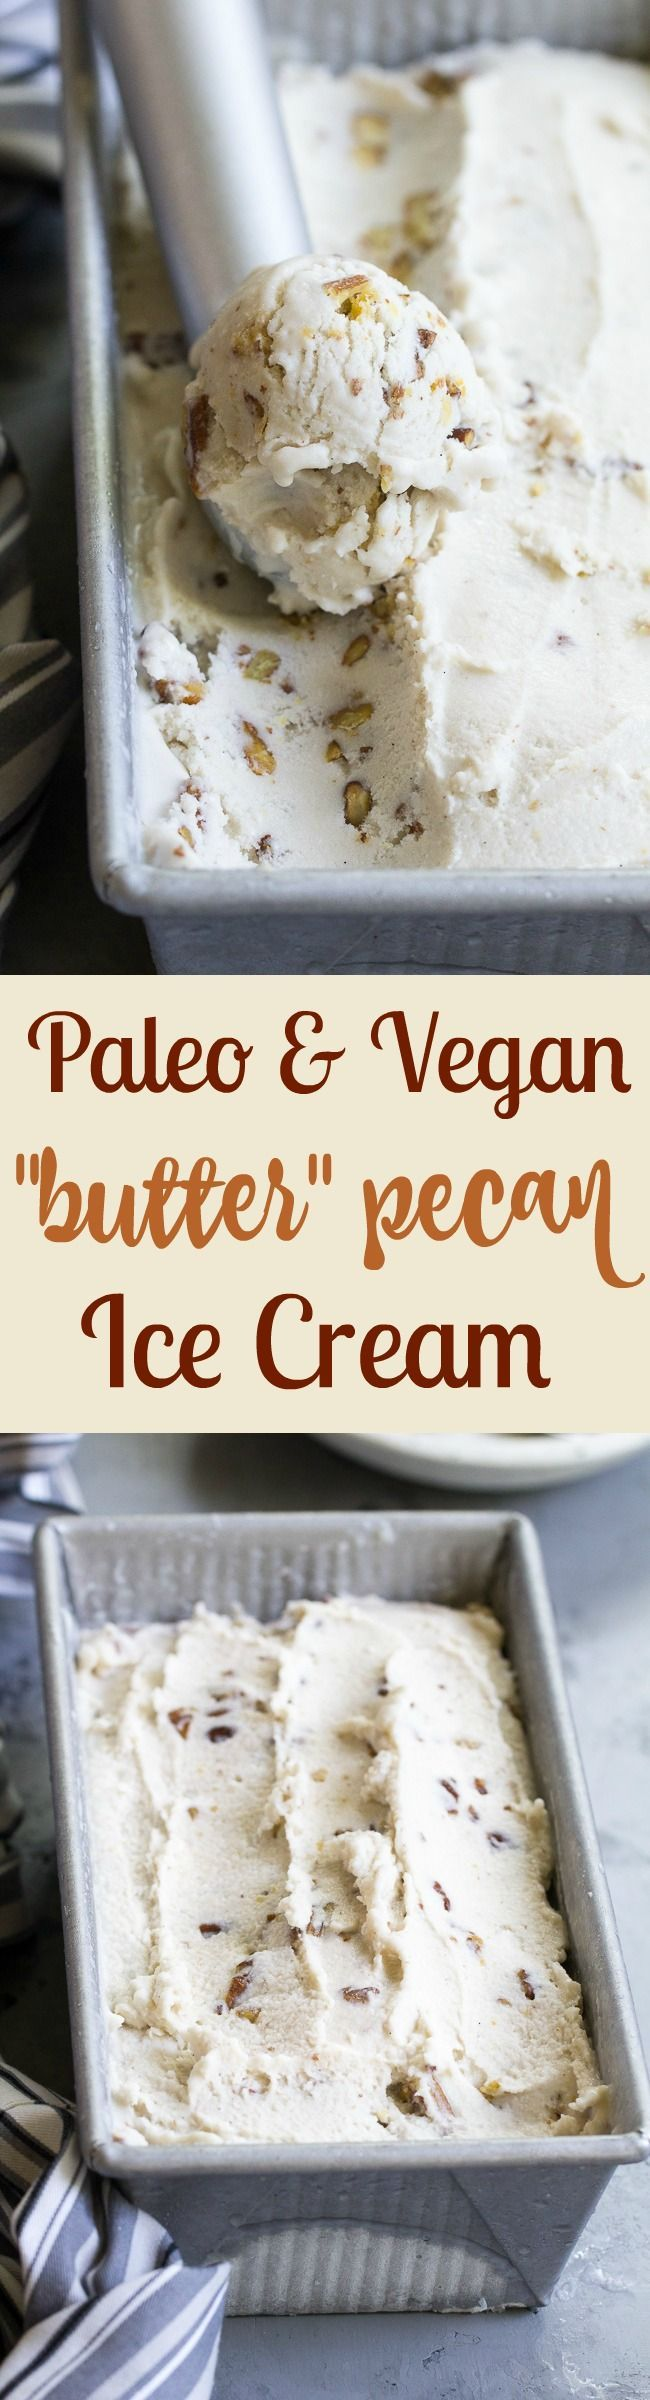 """This """"butter"""" pecan vegan ice cream is thick, creamy and decadently sweet yet made with no refined sugar or dairy. You won't believe you're not eating the real thing once you taste it! Paleo, vegan, gluten free, dairy-free."""